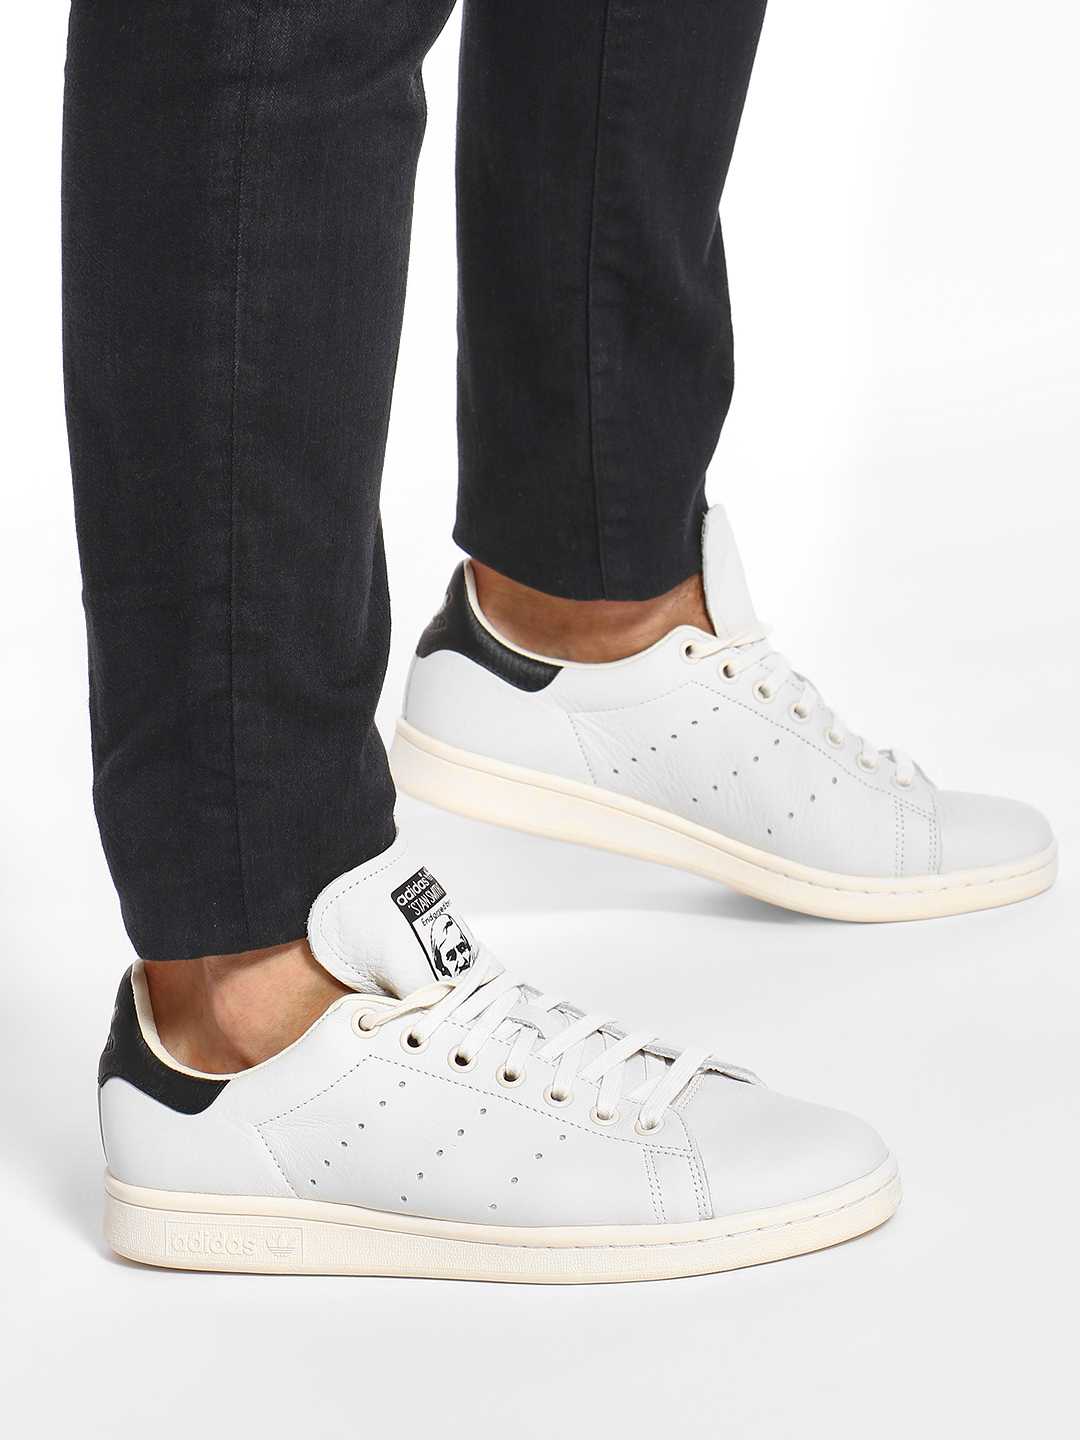 Adidas Originals Multi Stan Smith Shoes 1